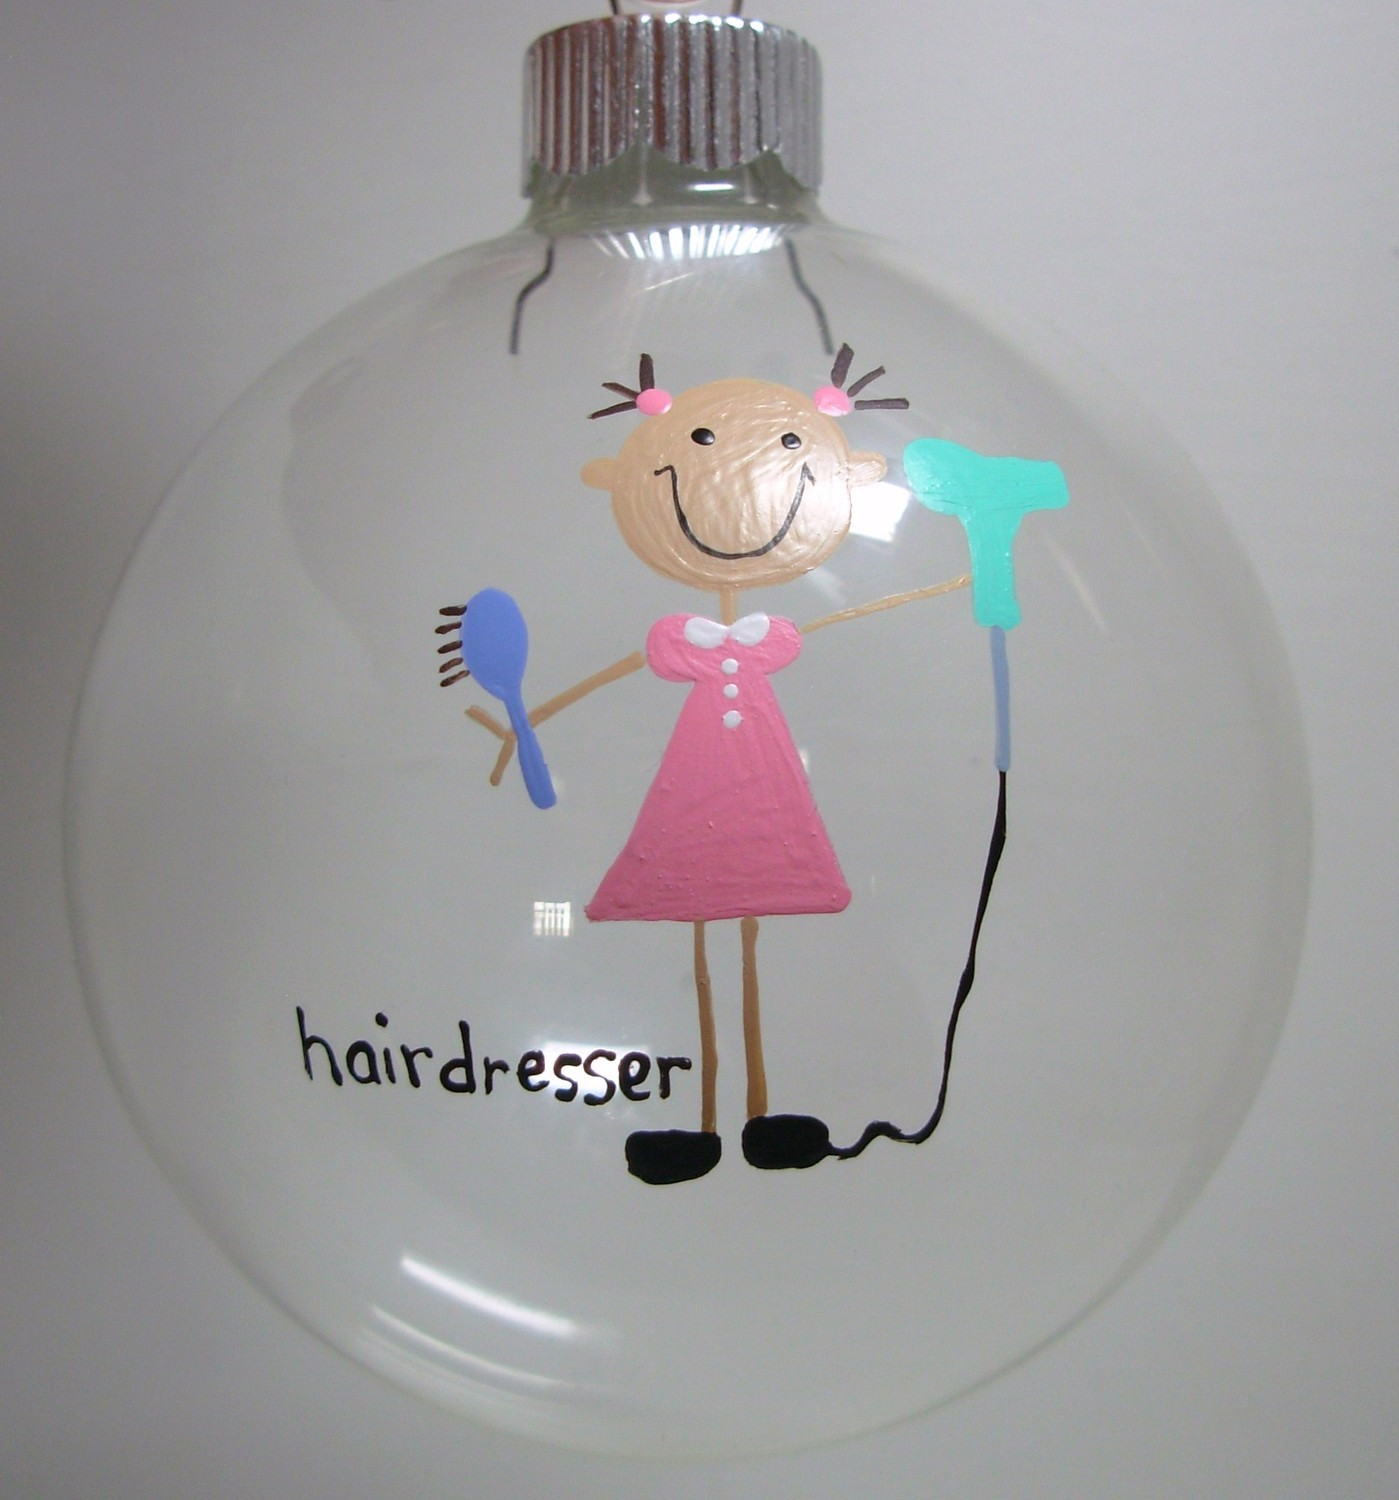 Hair stylist christmas ornaments - Hairdresser Christmas Ornament Handpainted Personalized